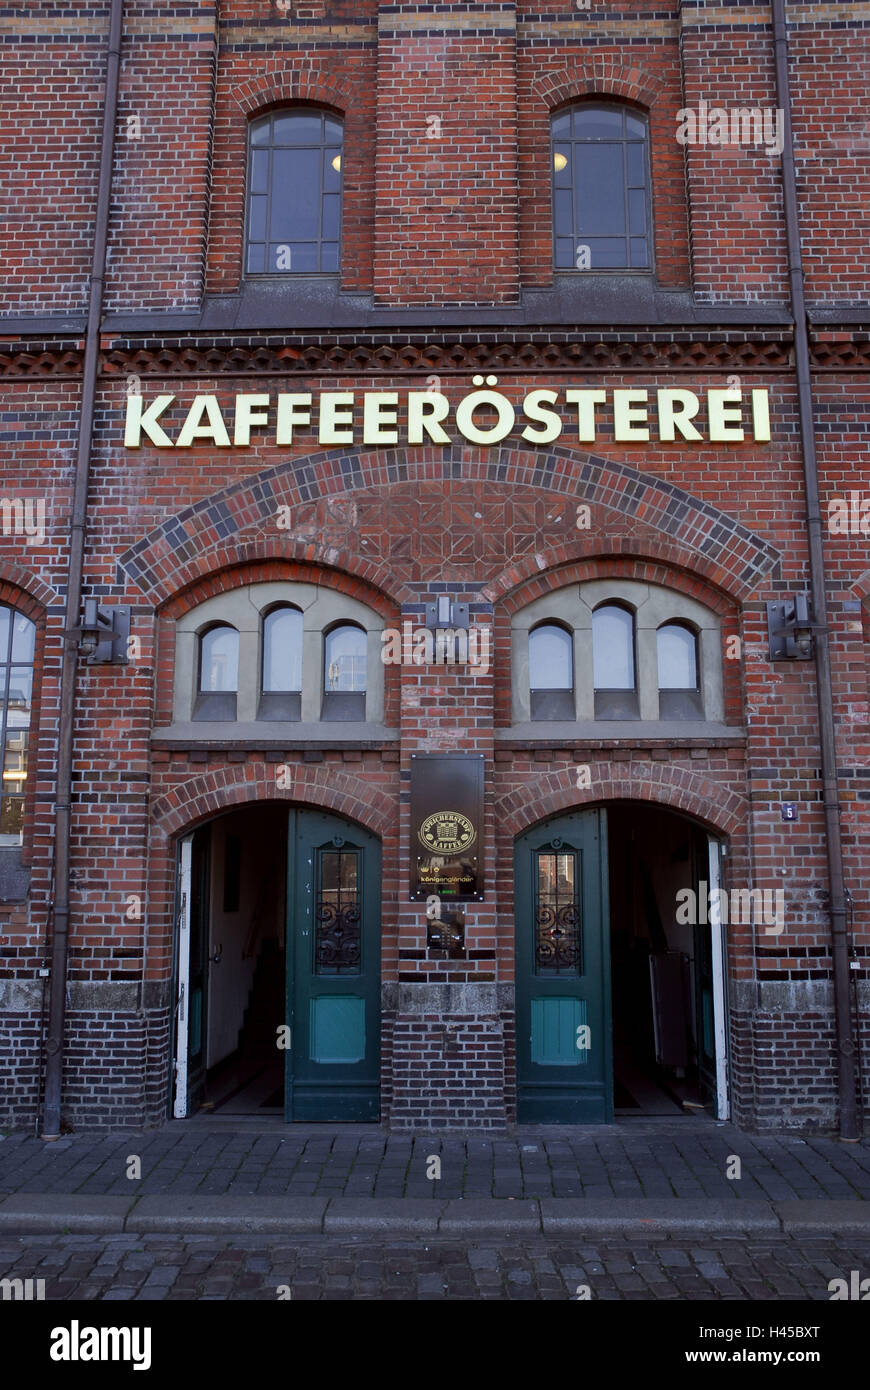 Germany, Hamburg, Speicherstadt (district), brick building, coffee roasters, facade, detail, - Stock Image